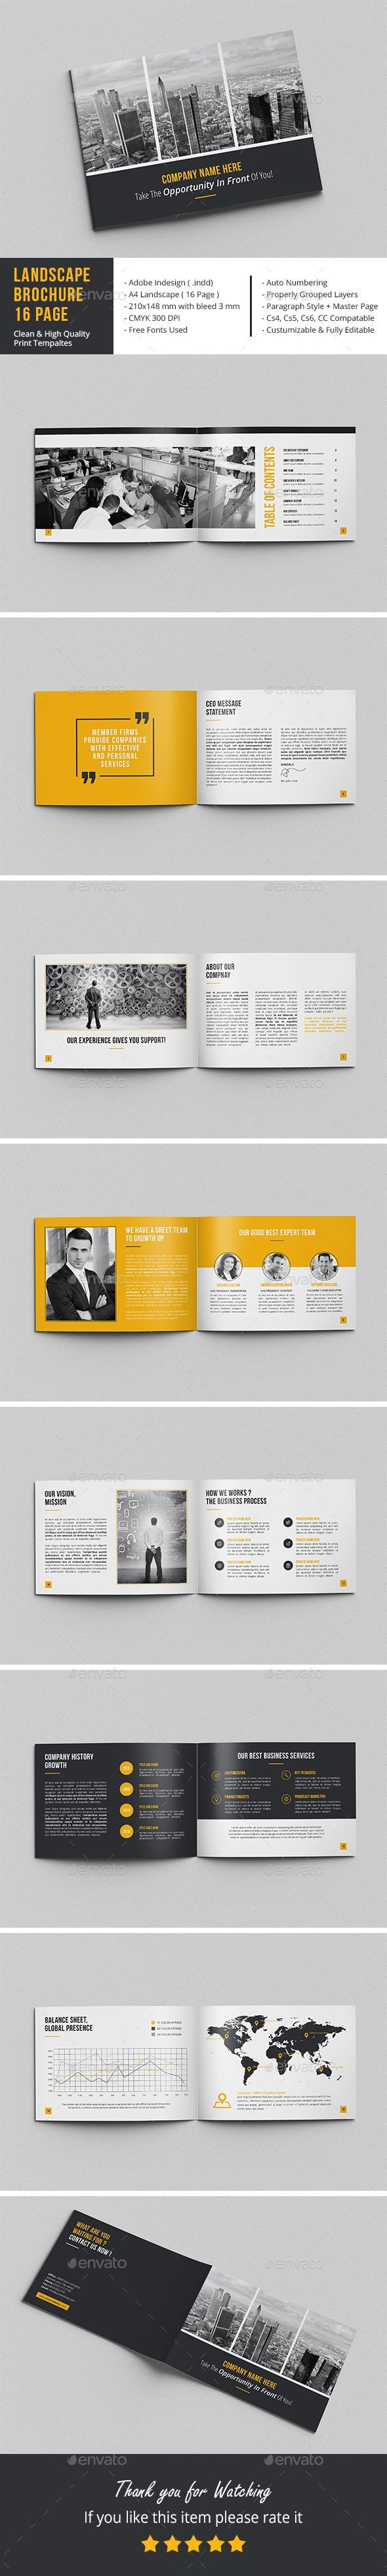 32 best portfolio images on pinterest page layout brochures and